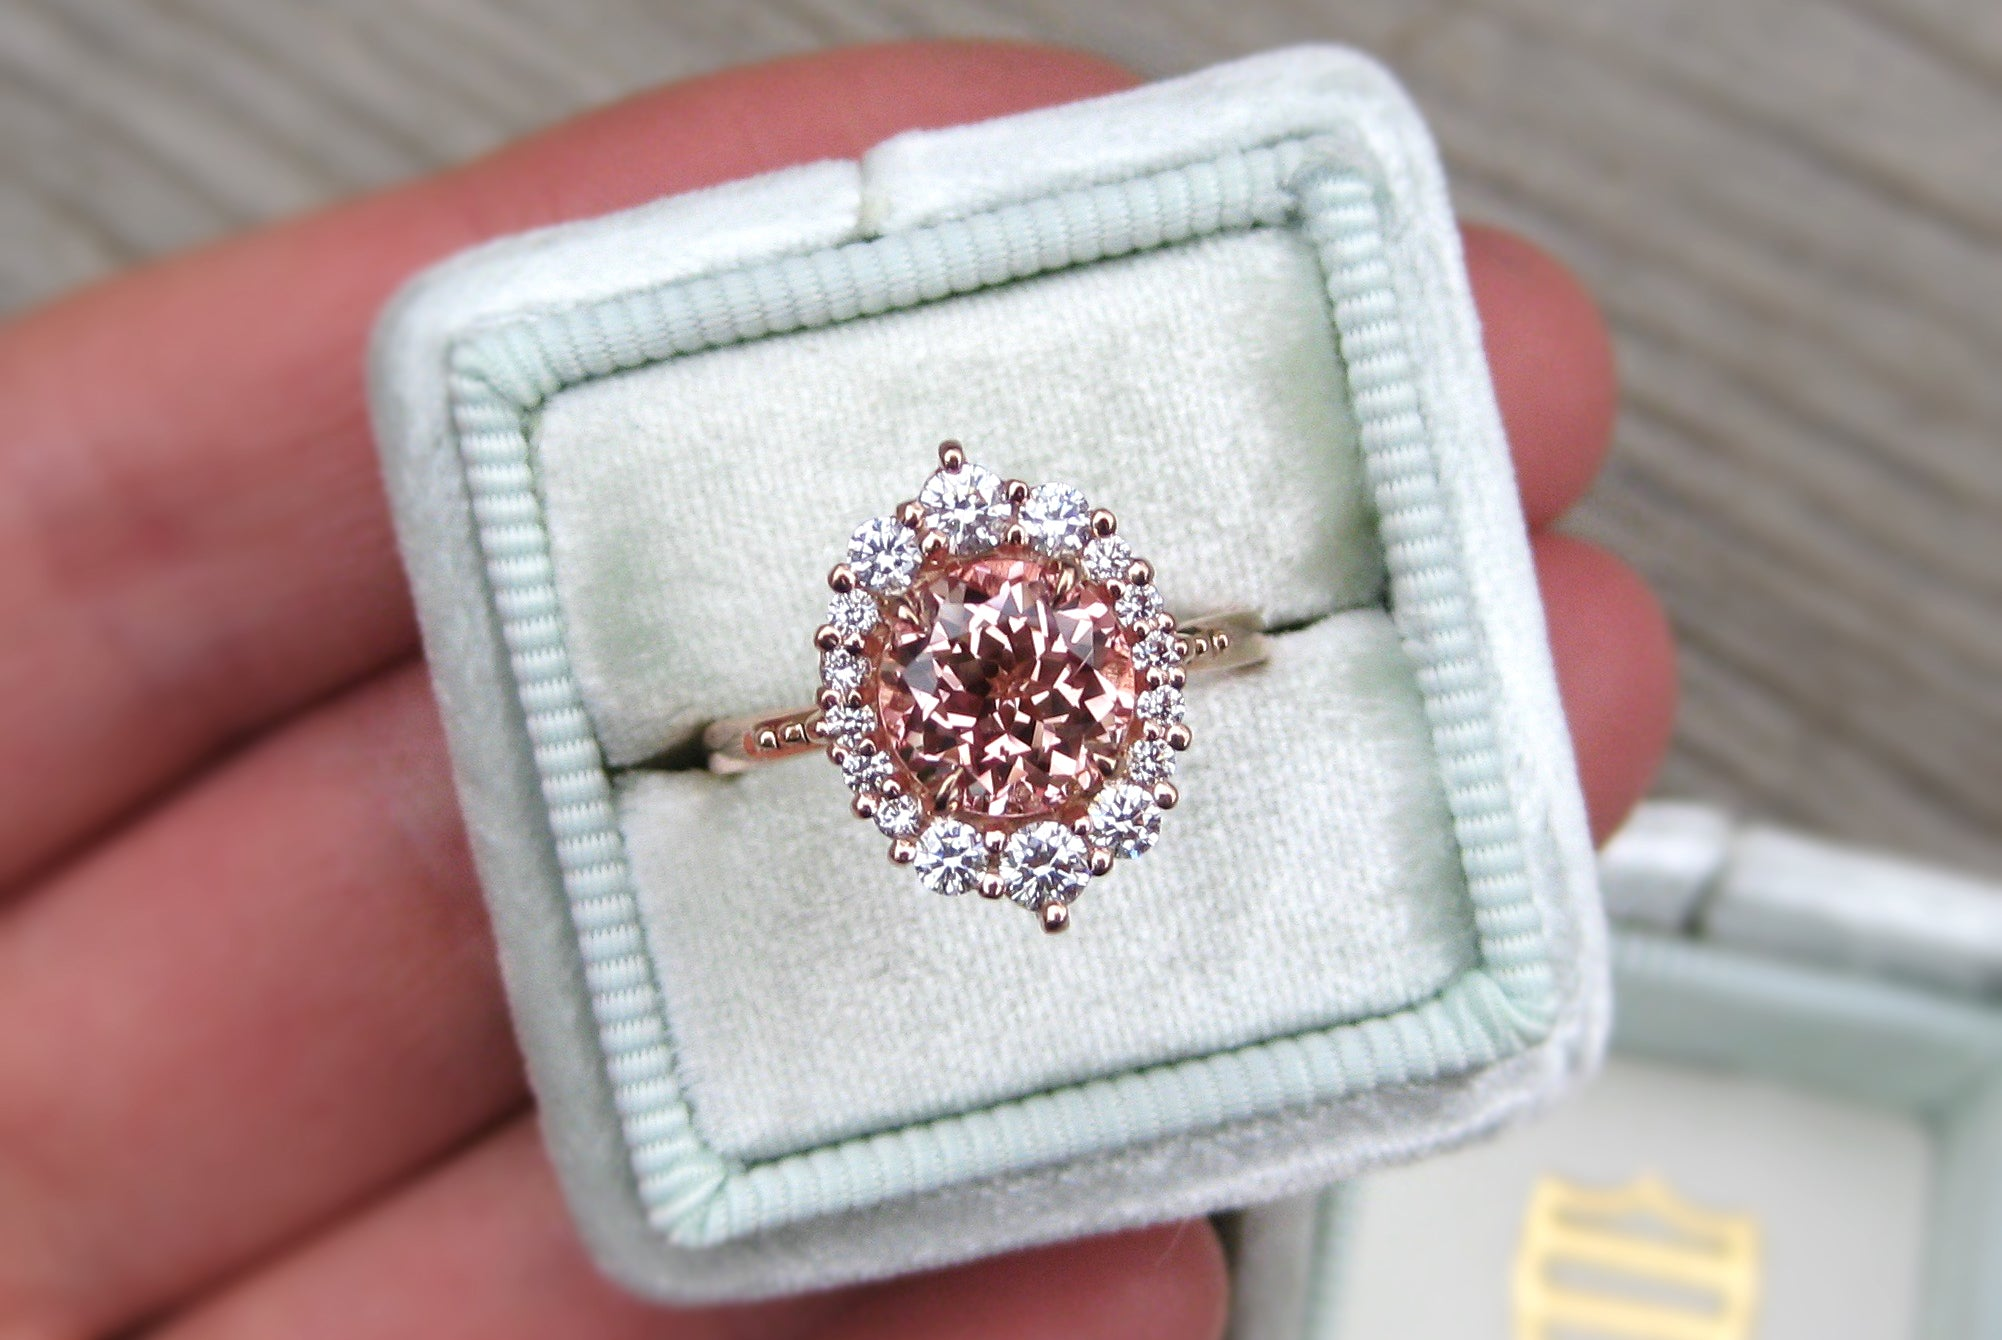 sapp vintage peach emerson ring rings created diamond engagement products in gold kristin dia rose champagne profile sapphire side low lab halo